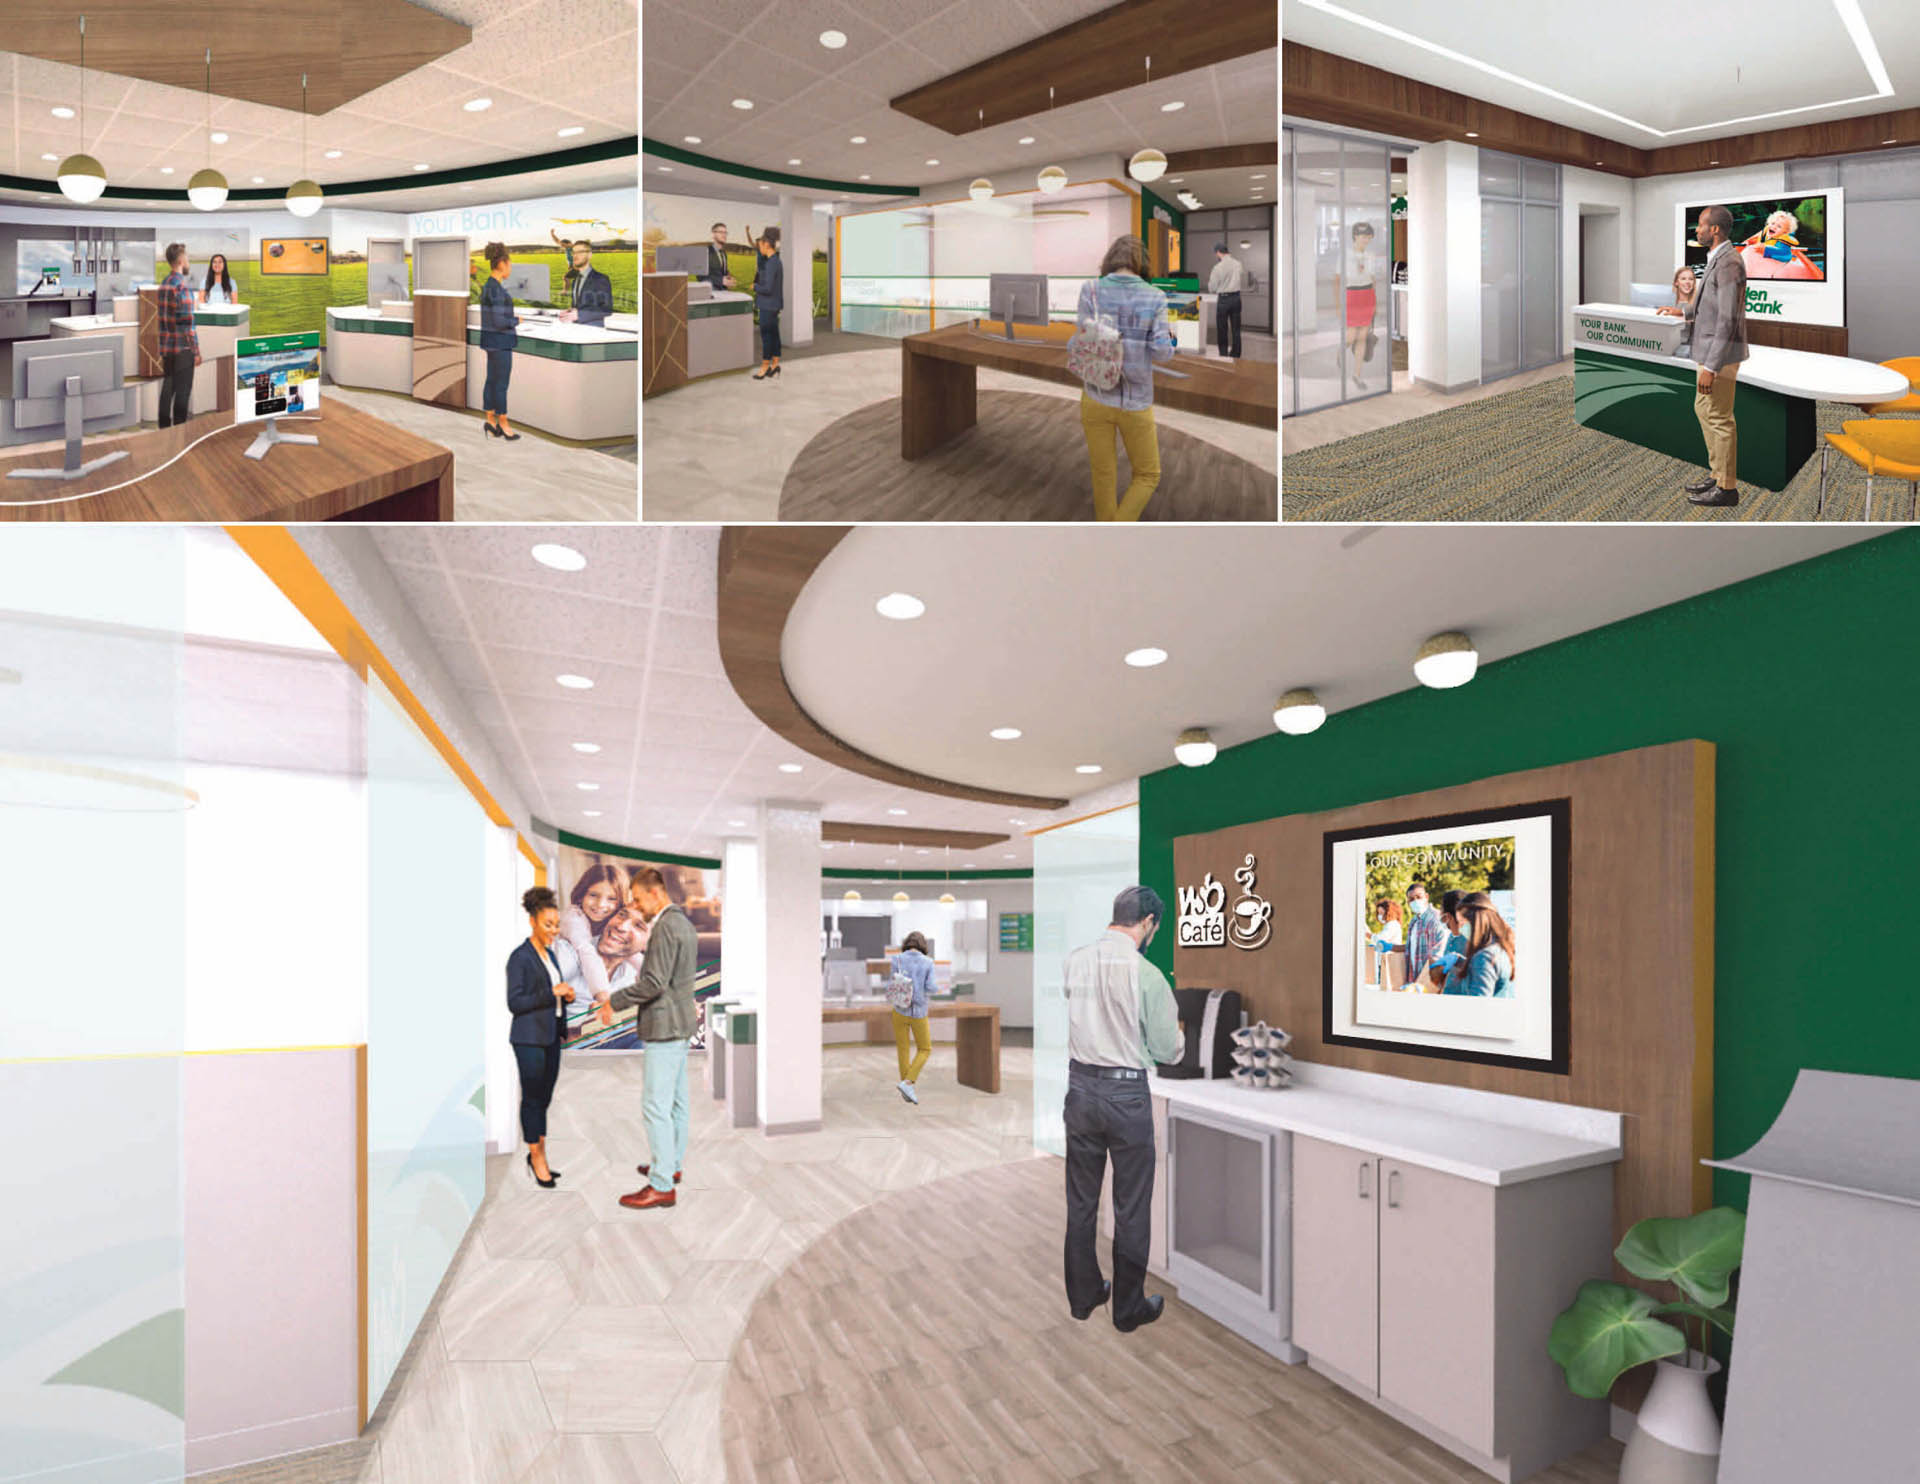 WALDEN SAVINGS BANK ANNOUNCES DIGITAL BRANCH TRANSFORMATION AT SCOTT'S CORNERS HEADQUARTERS